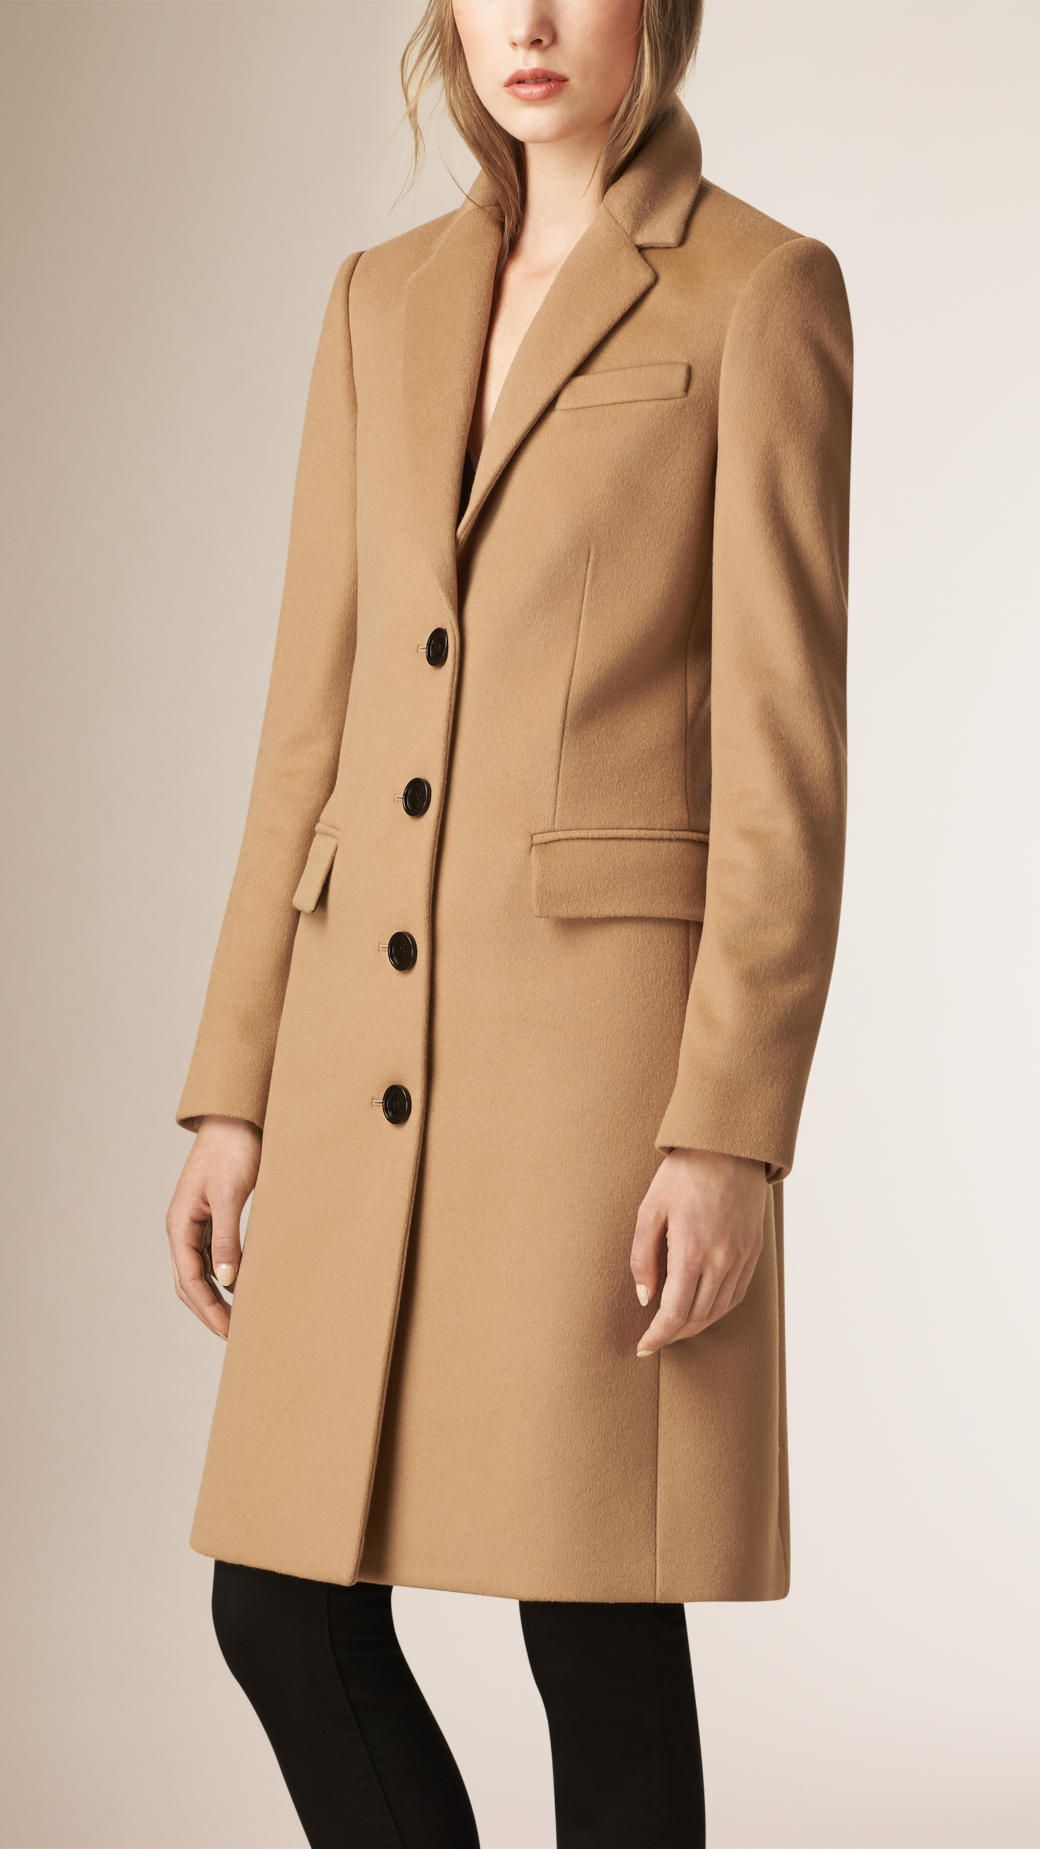 21d4e0d1f36 Tailored Wool Cashmere Coat Camel